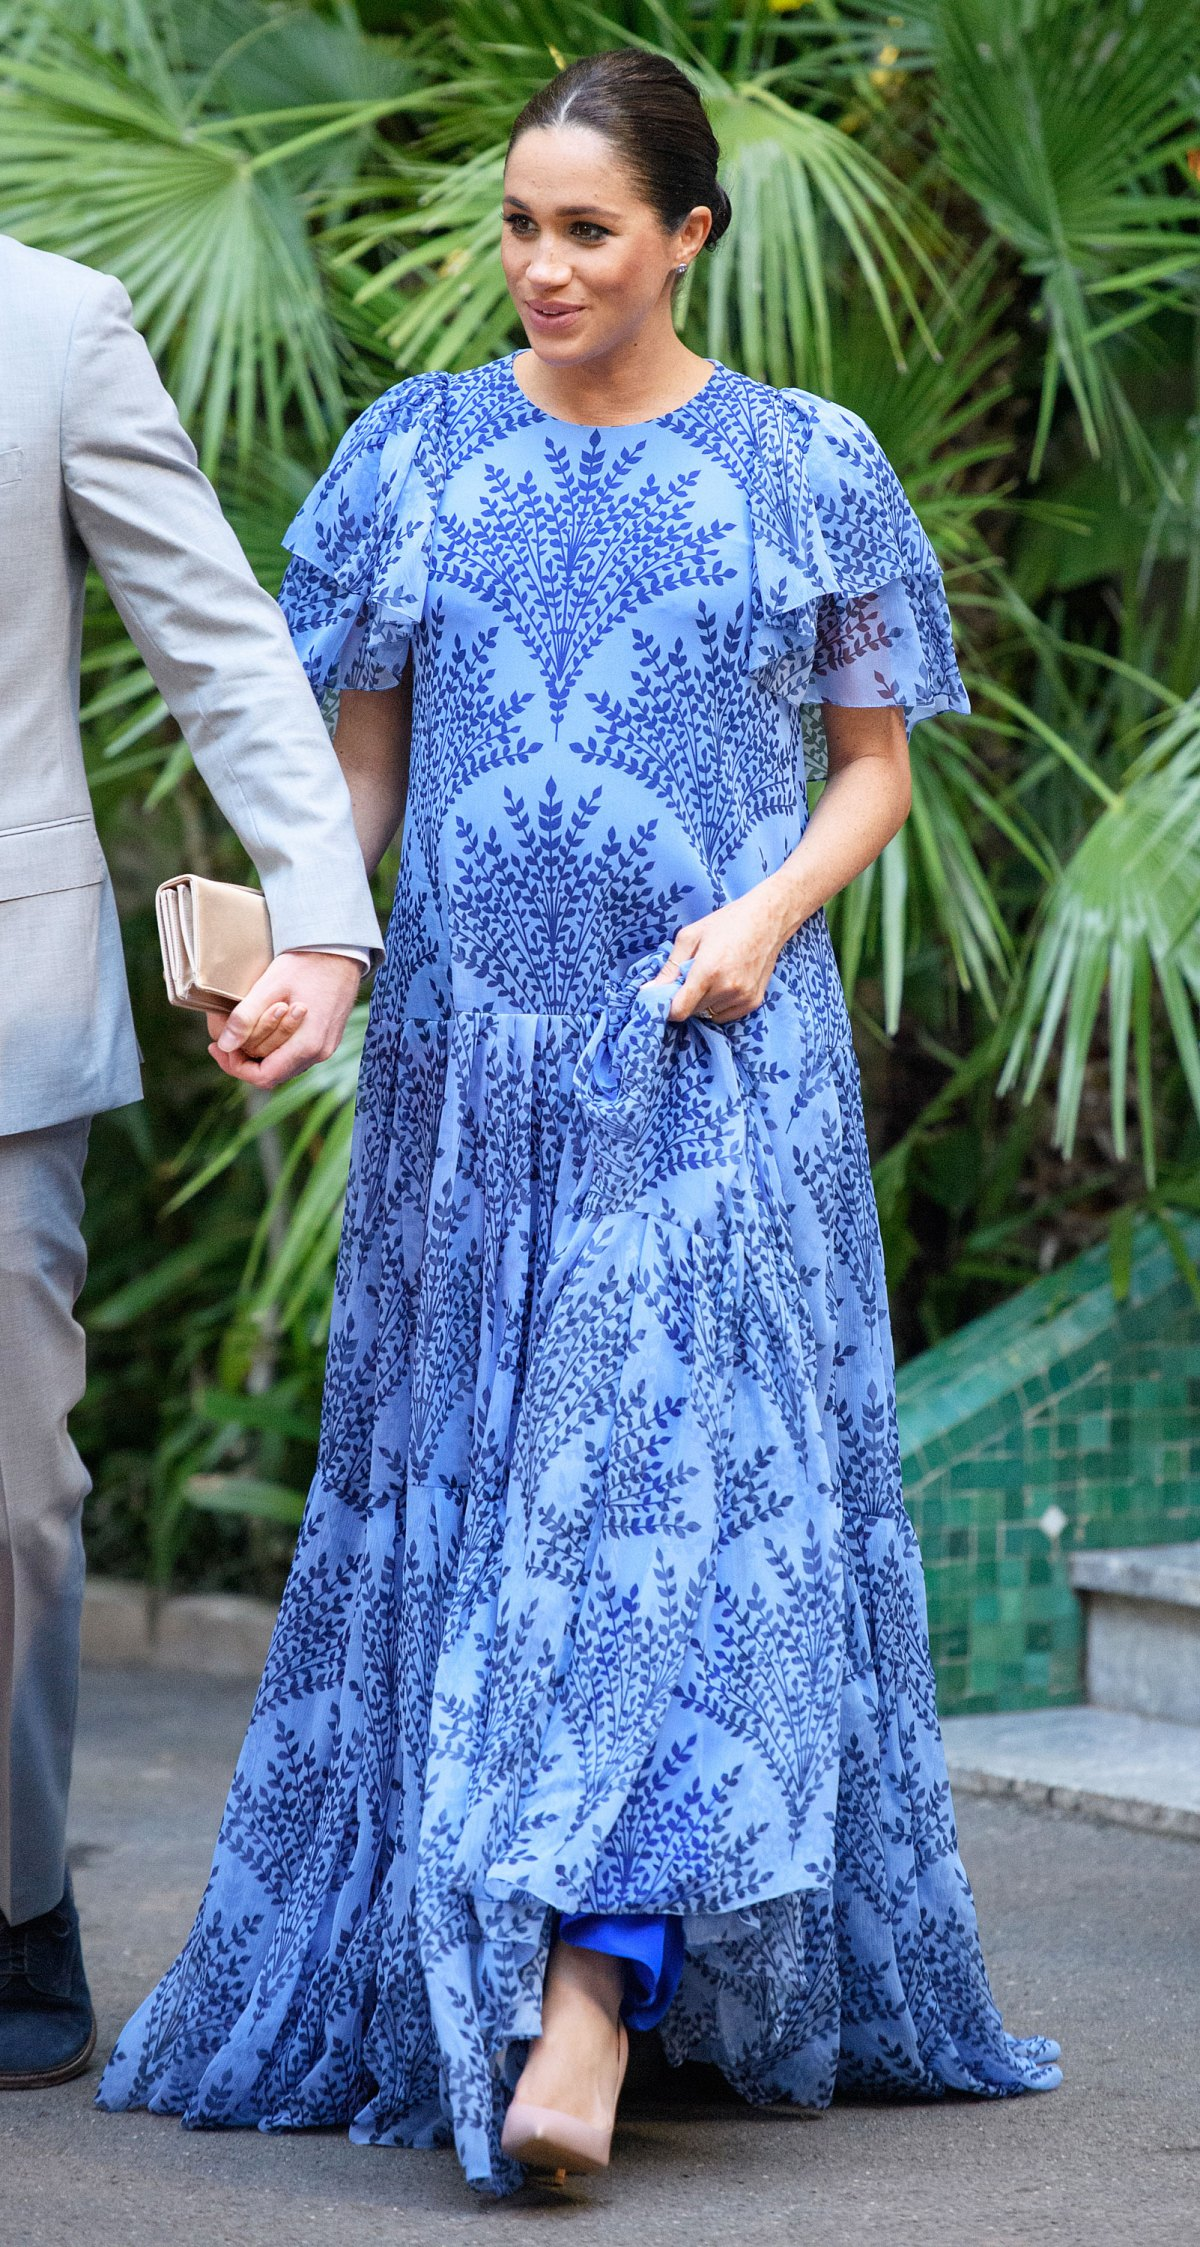 7c4e54bdce230 Meghan Markle's Royal Fashion: Best Outfits and Dresses